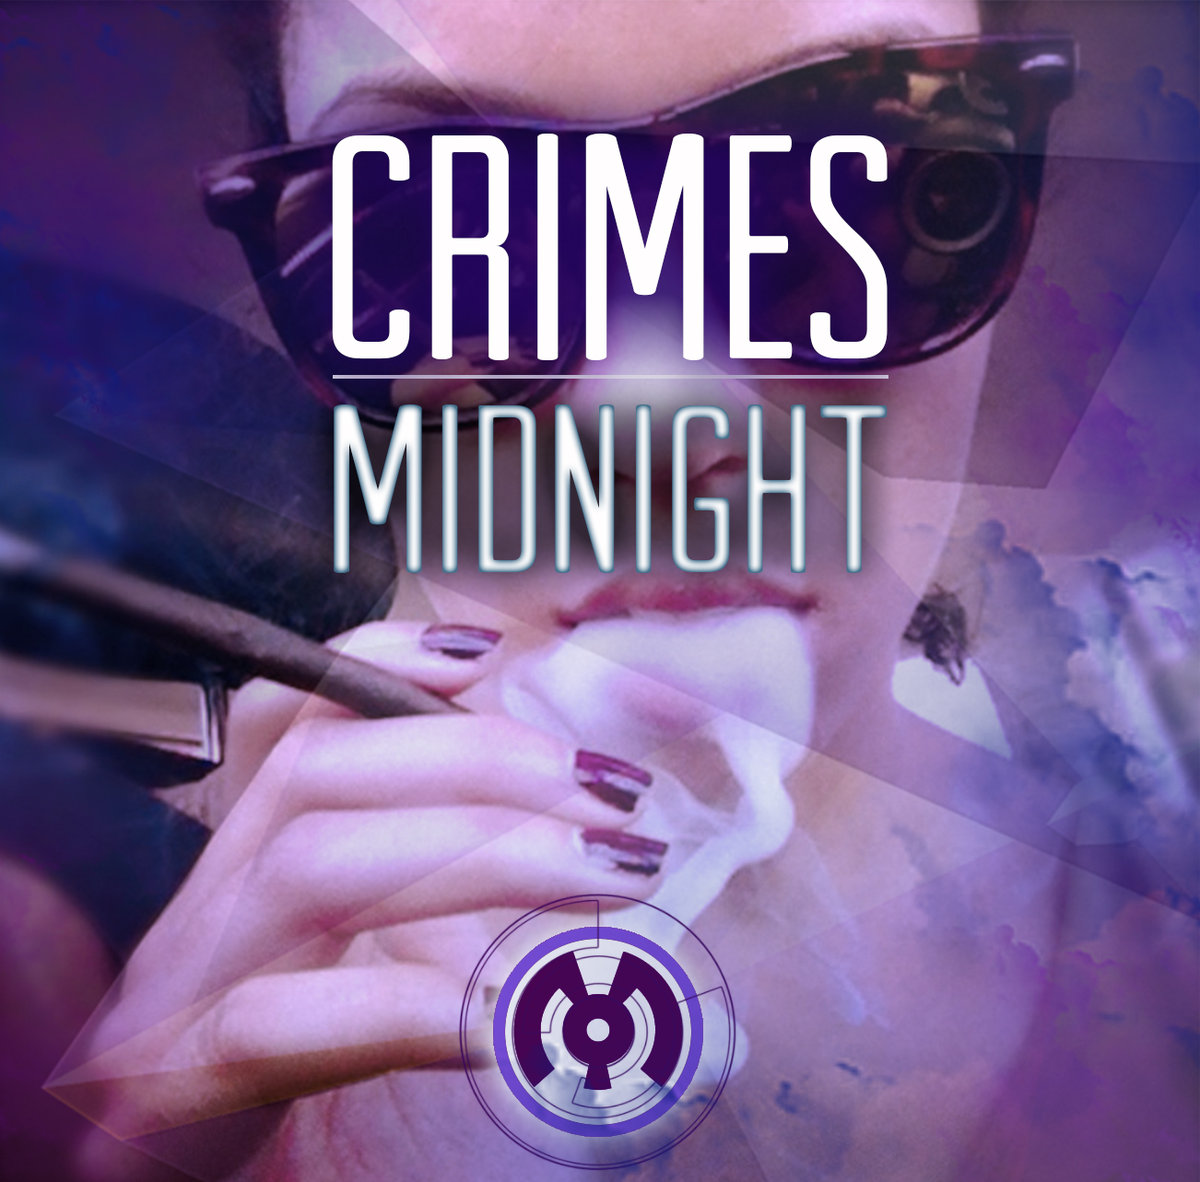 Crimes! - Opium @ 'Midnight' album (electronic, dubstep)